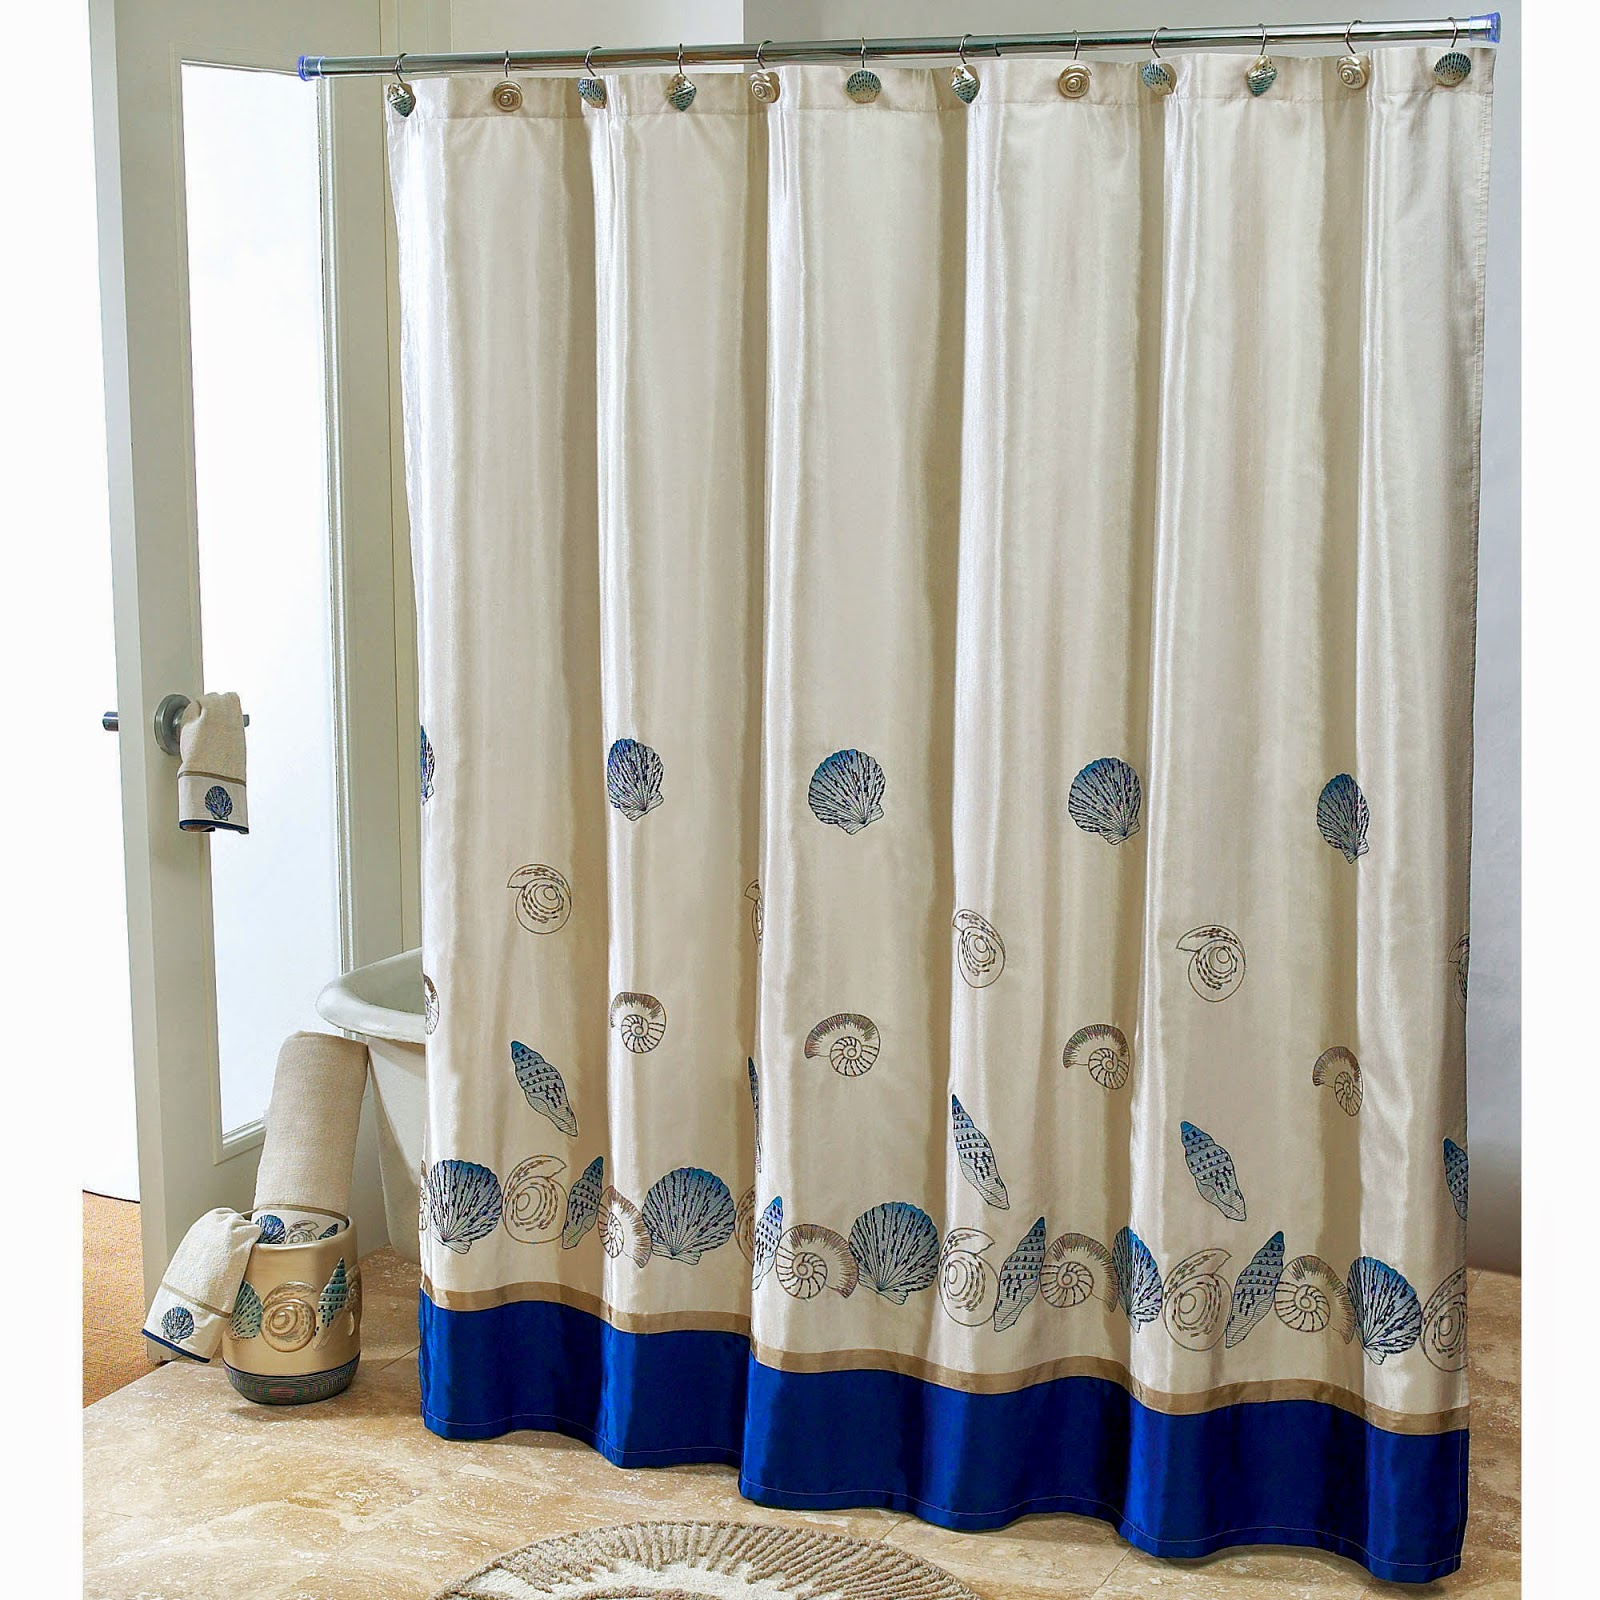 Curtain ideas nautical bathroom window curtain for Bathroom window curtains